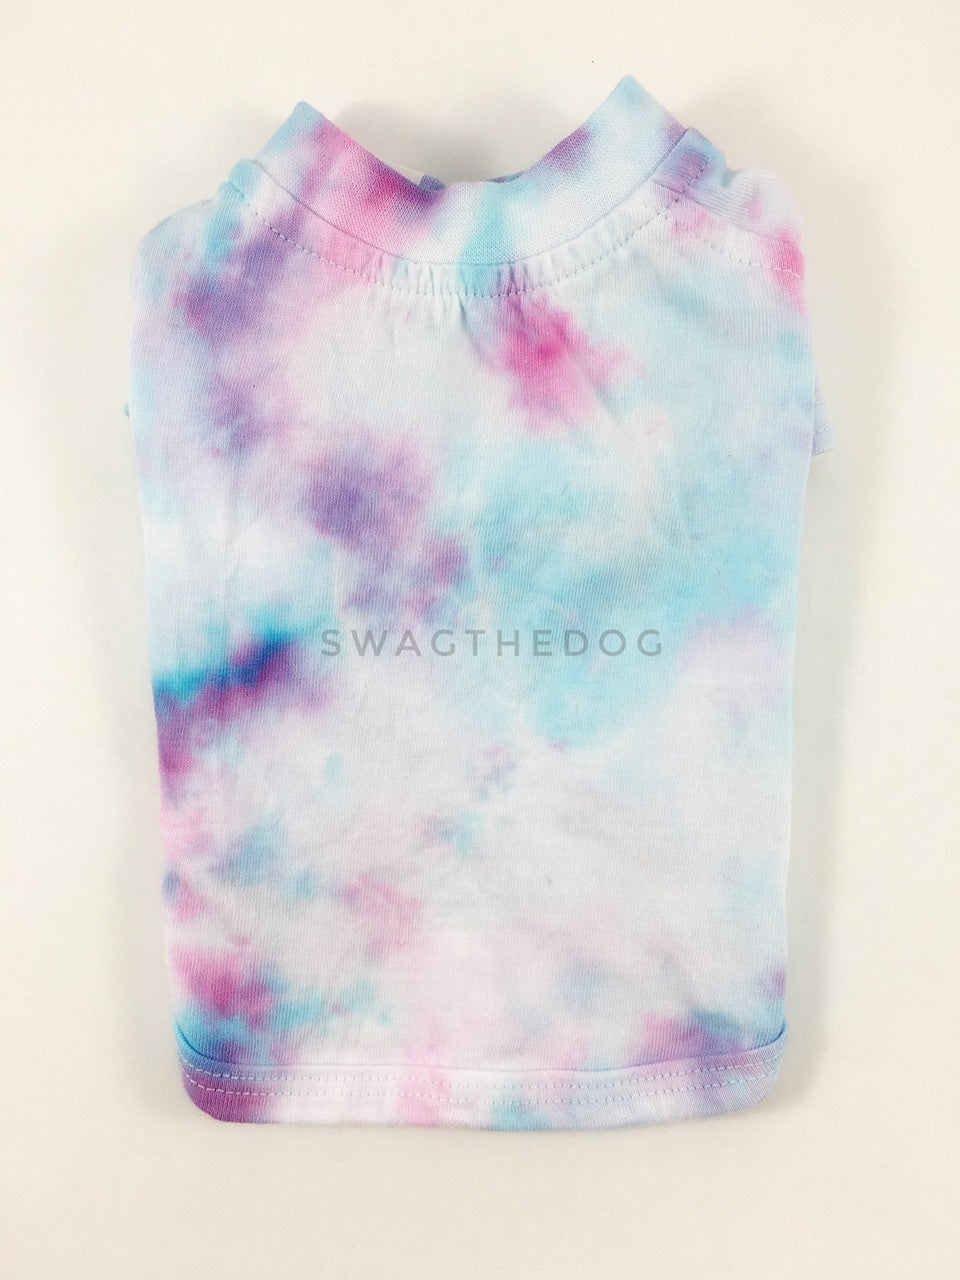 Swagadelic Unicorn Tie Dye Tee - Product back view. The hand tie-dyed tee with Pink and Sky Blue